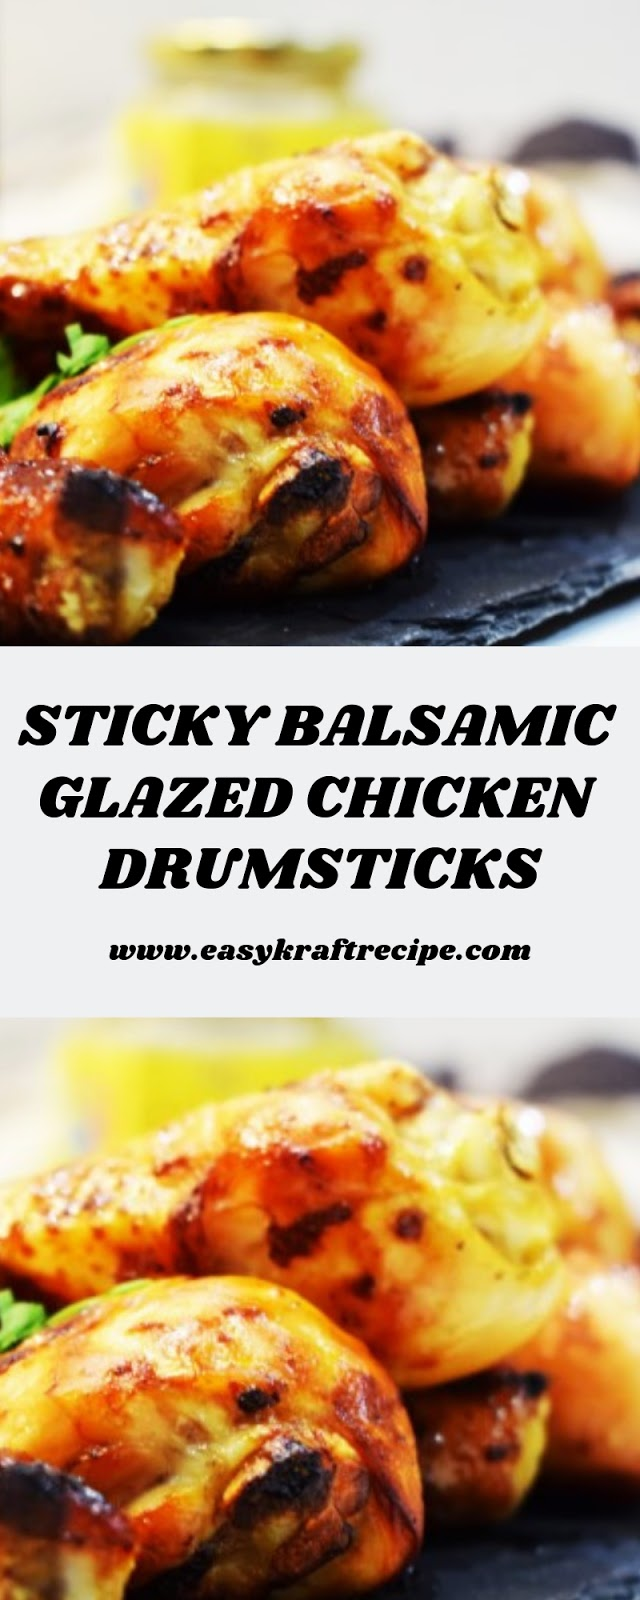 STICKY BALSAMIC GLAZED CHICKEN DRUMSTICKS